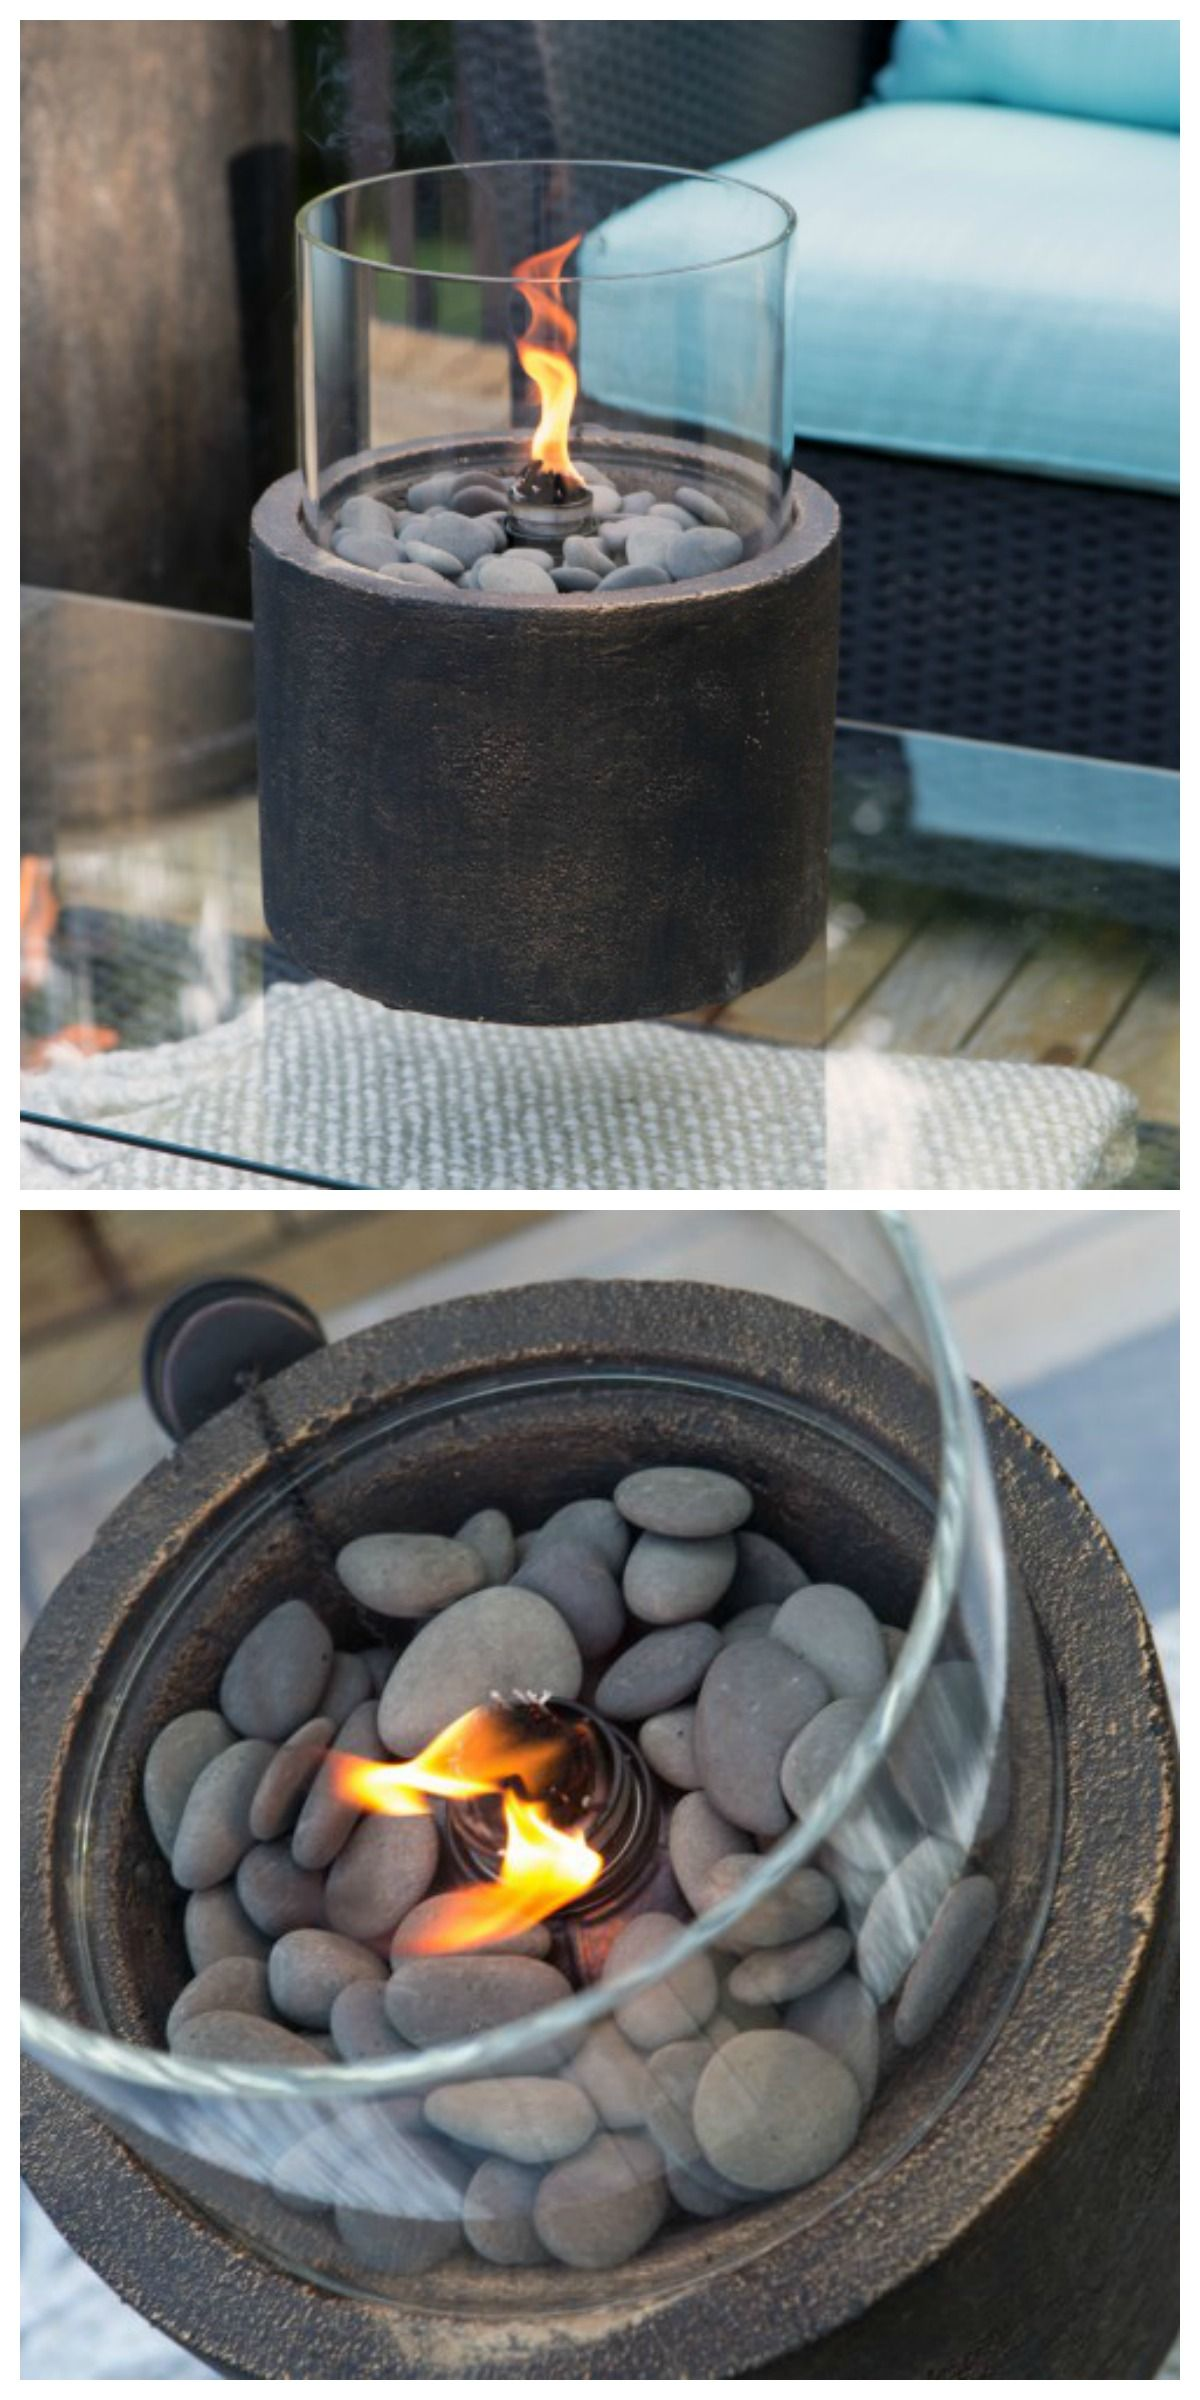 Tabletop Fire Bowl Tabletop Fire Bowl Tabletop Firepit Fire Bowls